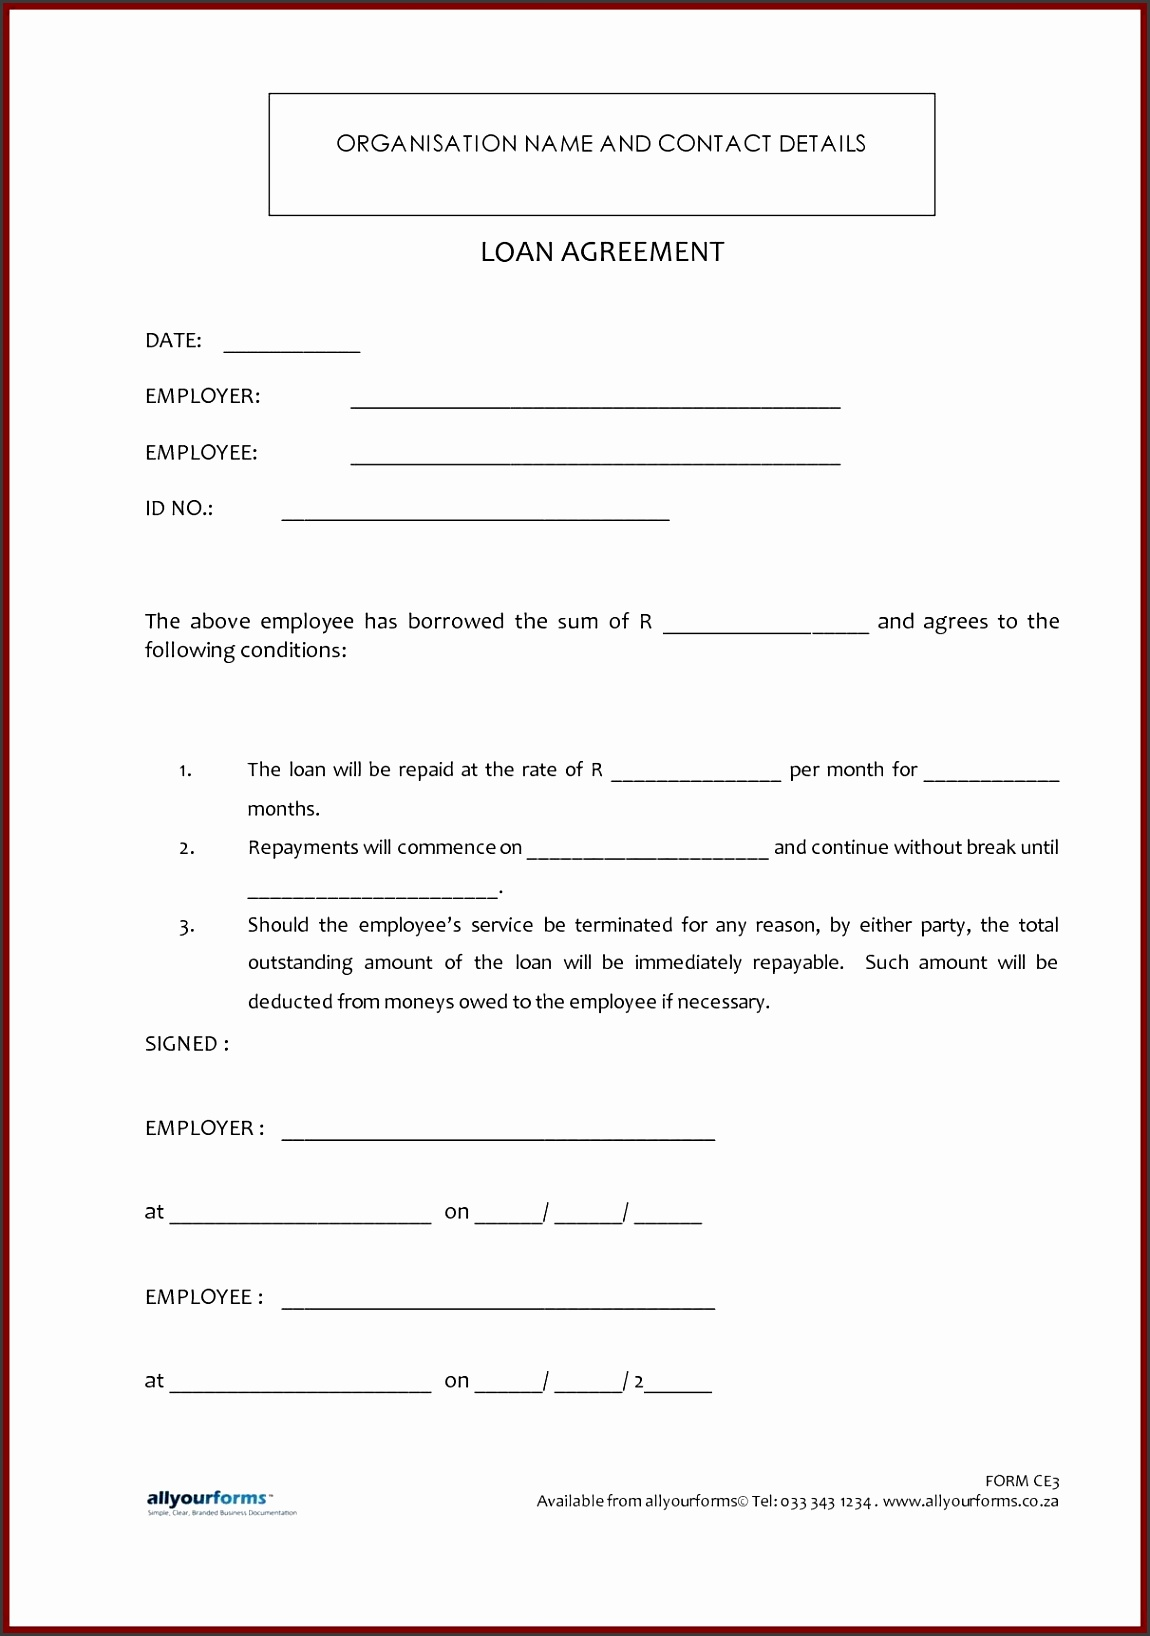 Free Loan Agreement Template Word Free Loan Agreement Template Uk Free Loan Agreement Template Microsoft Word